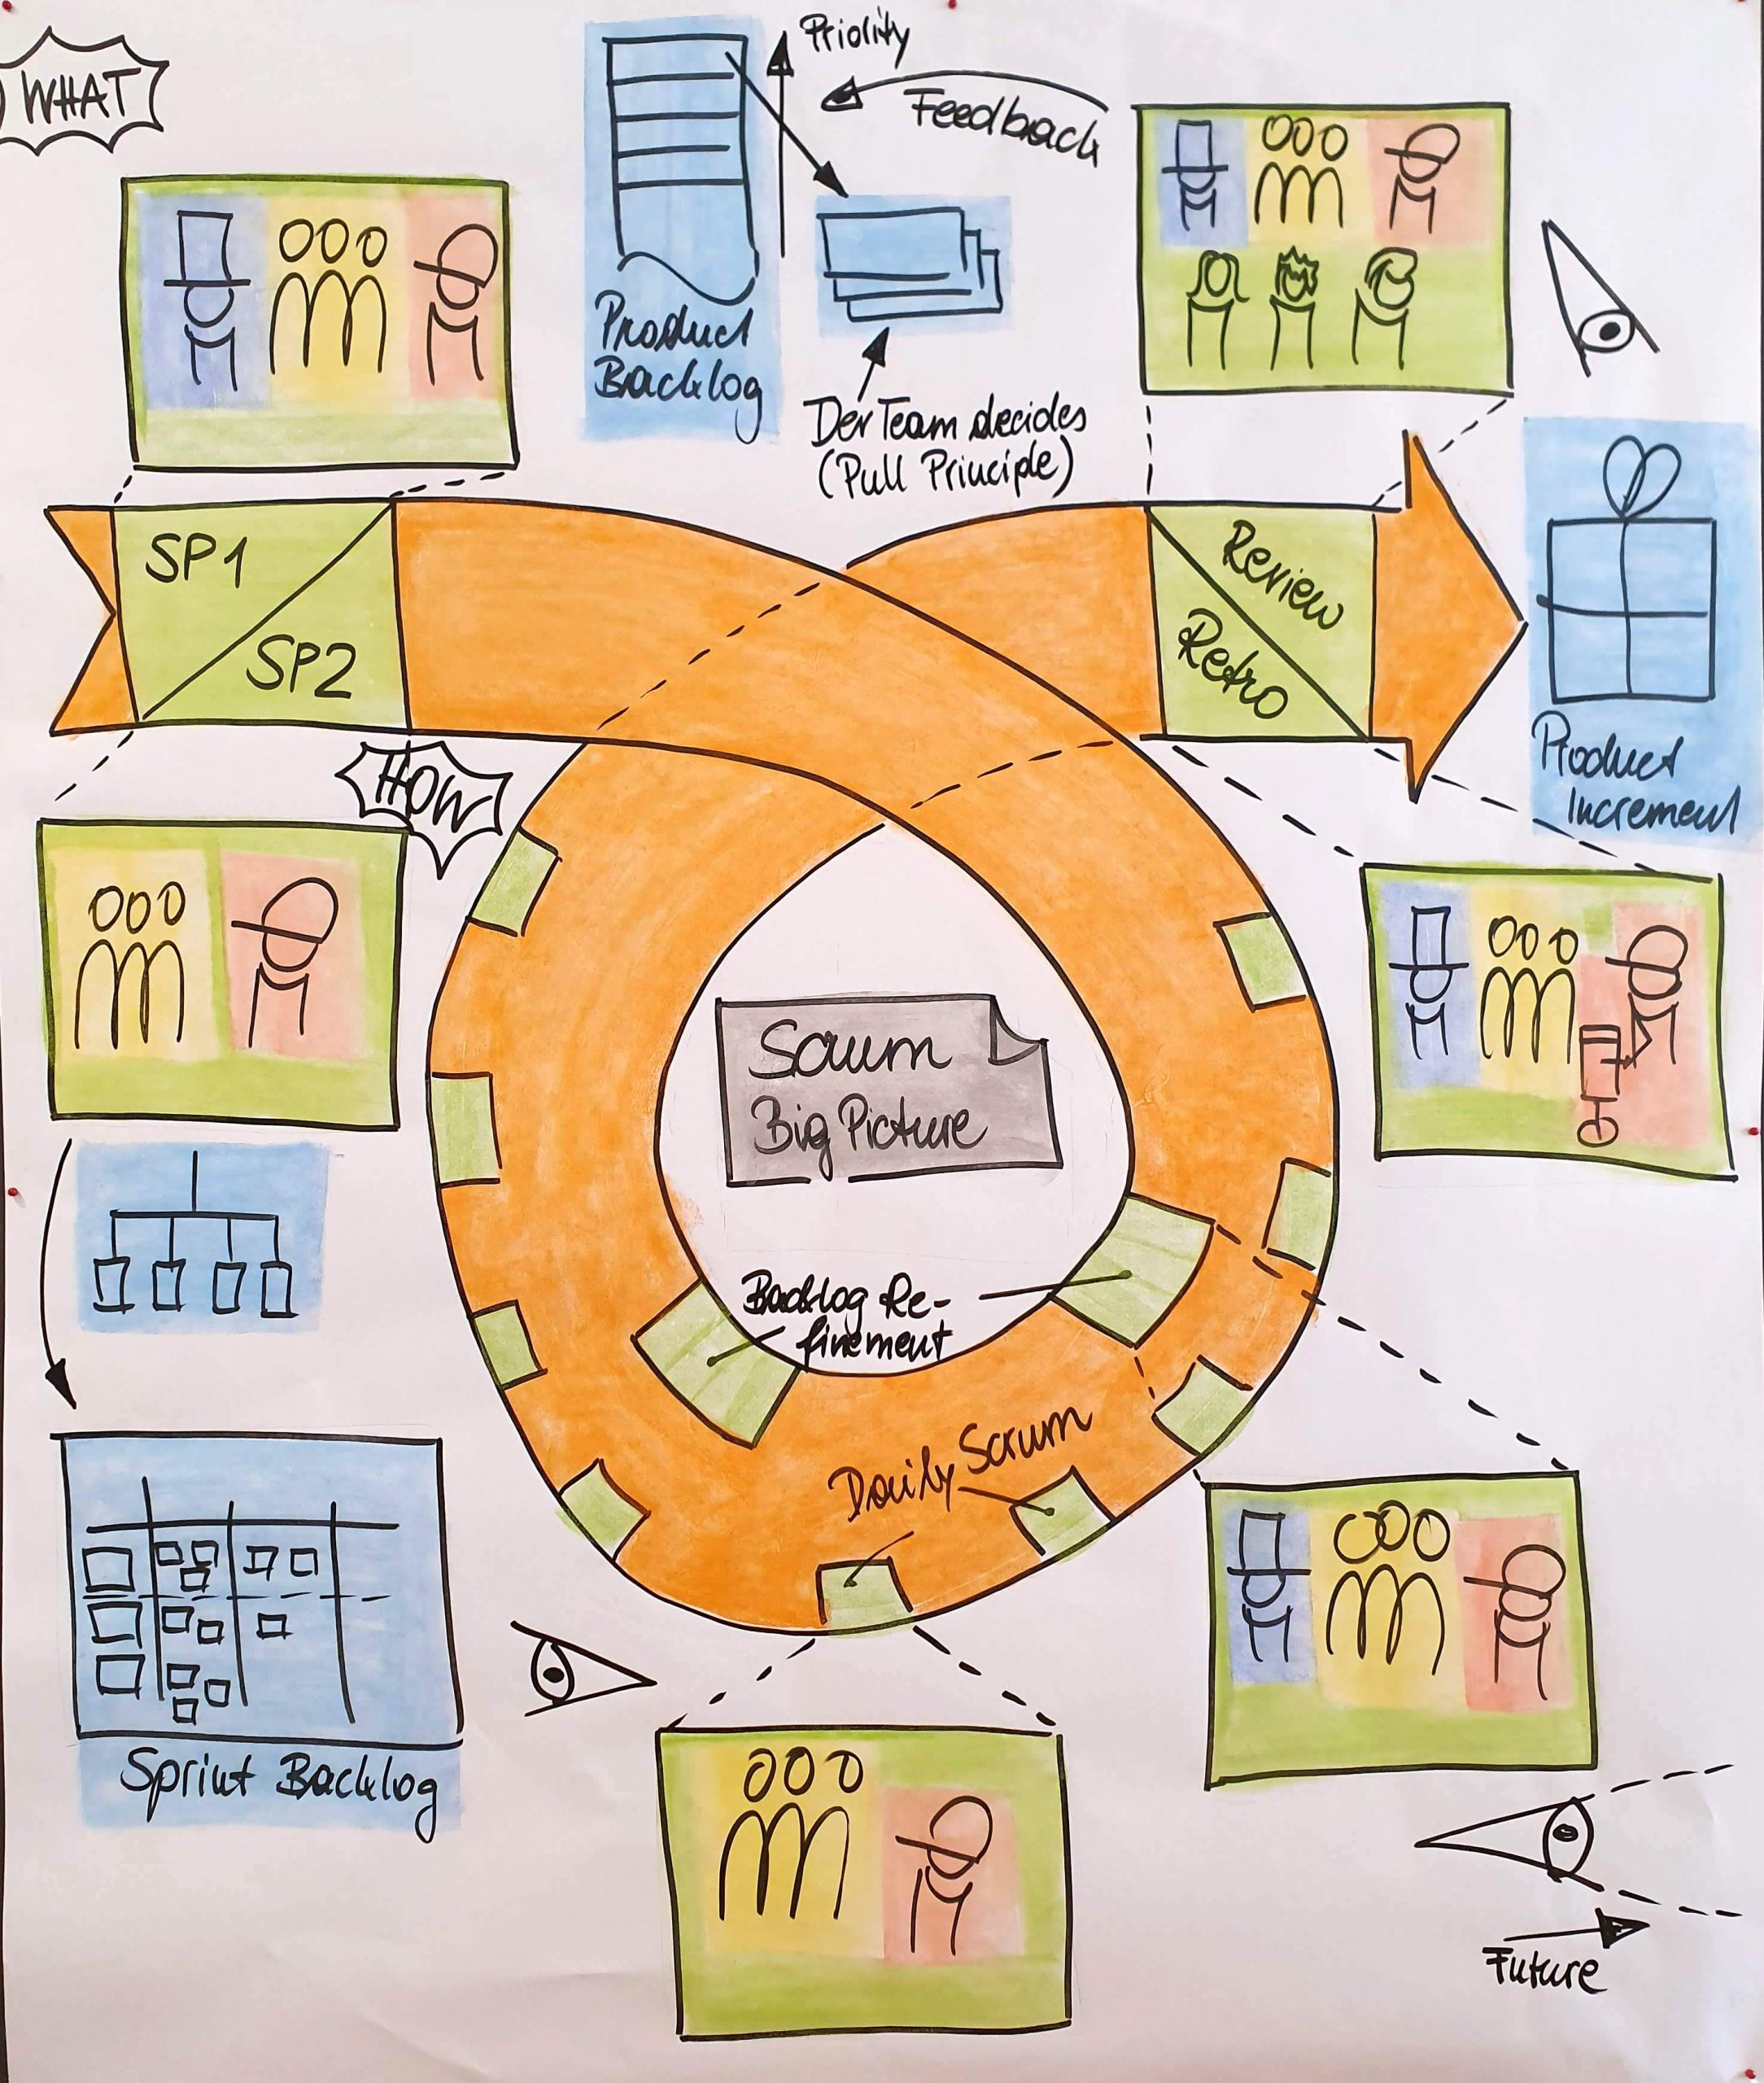 Play Scrum Big Picture